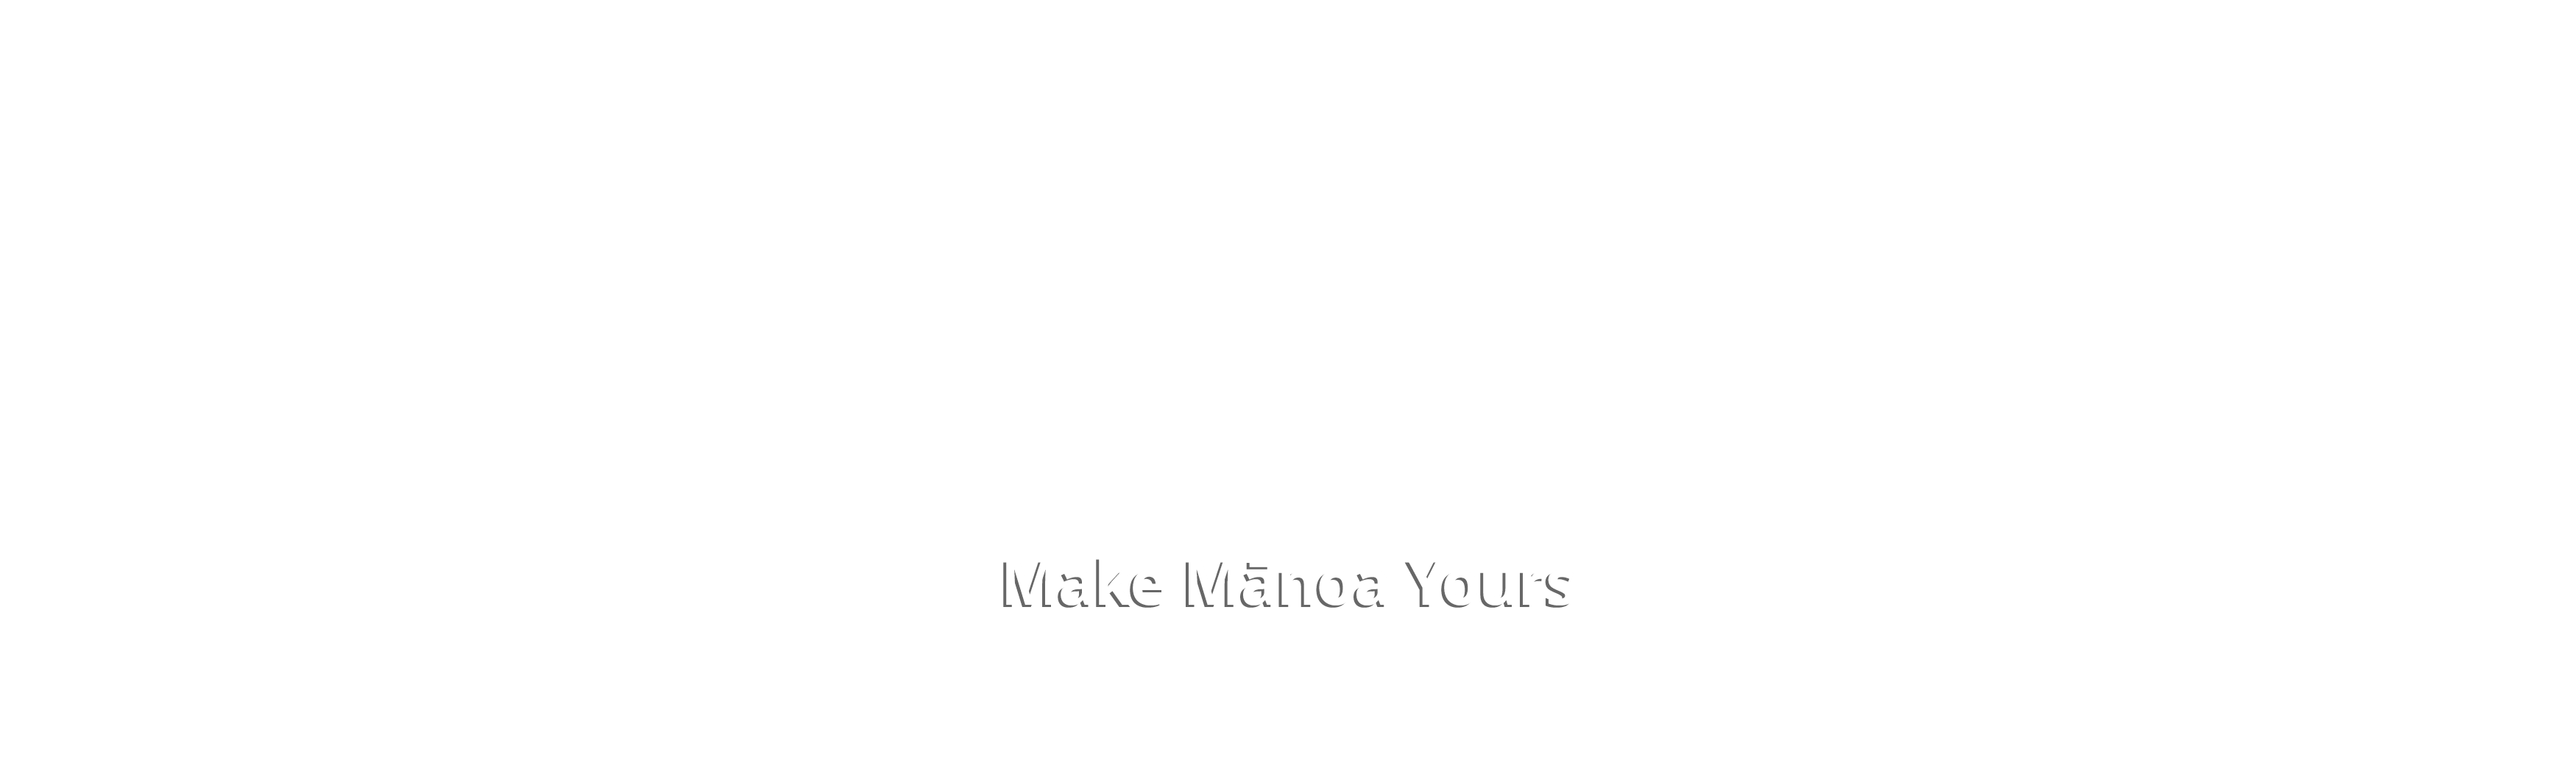 Make Mānoa Yours